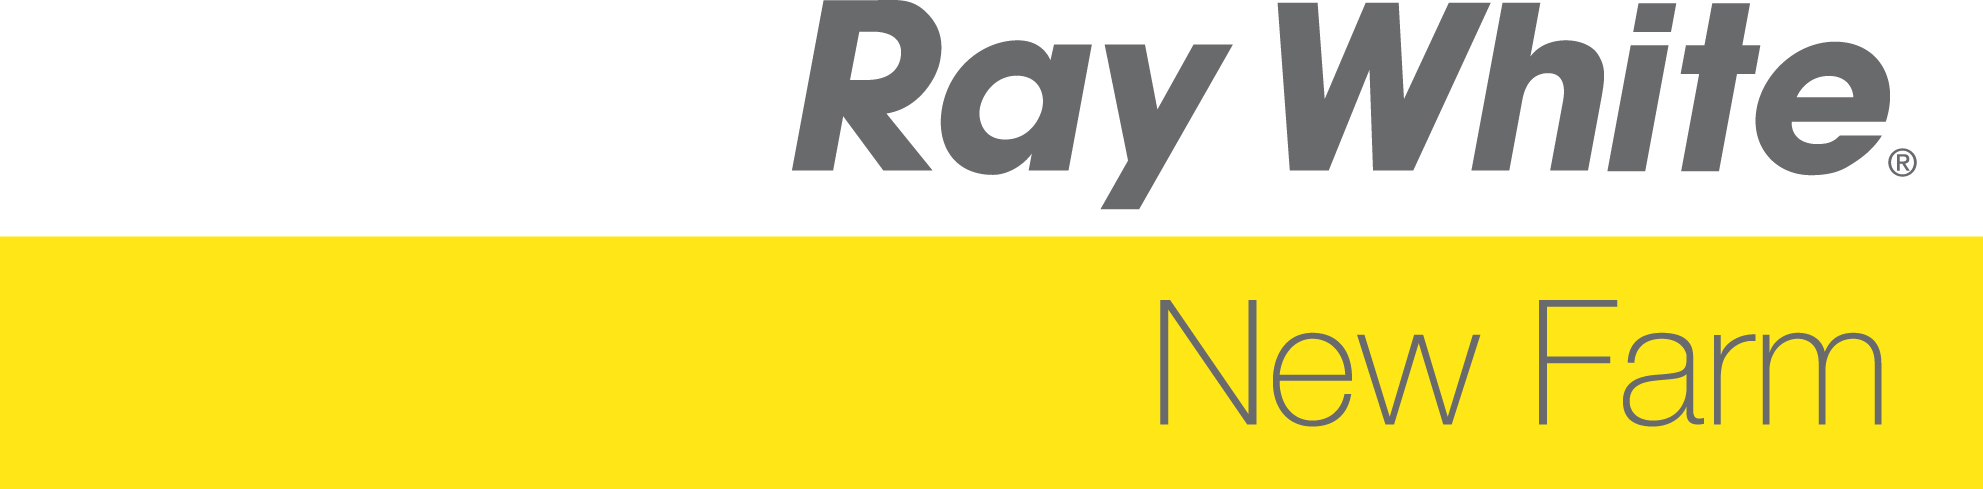 Ray White New Farm, New Farm, 4005